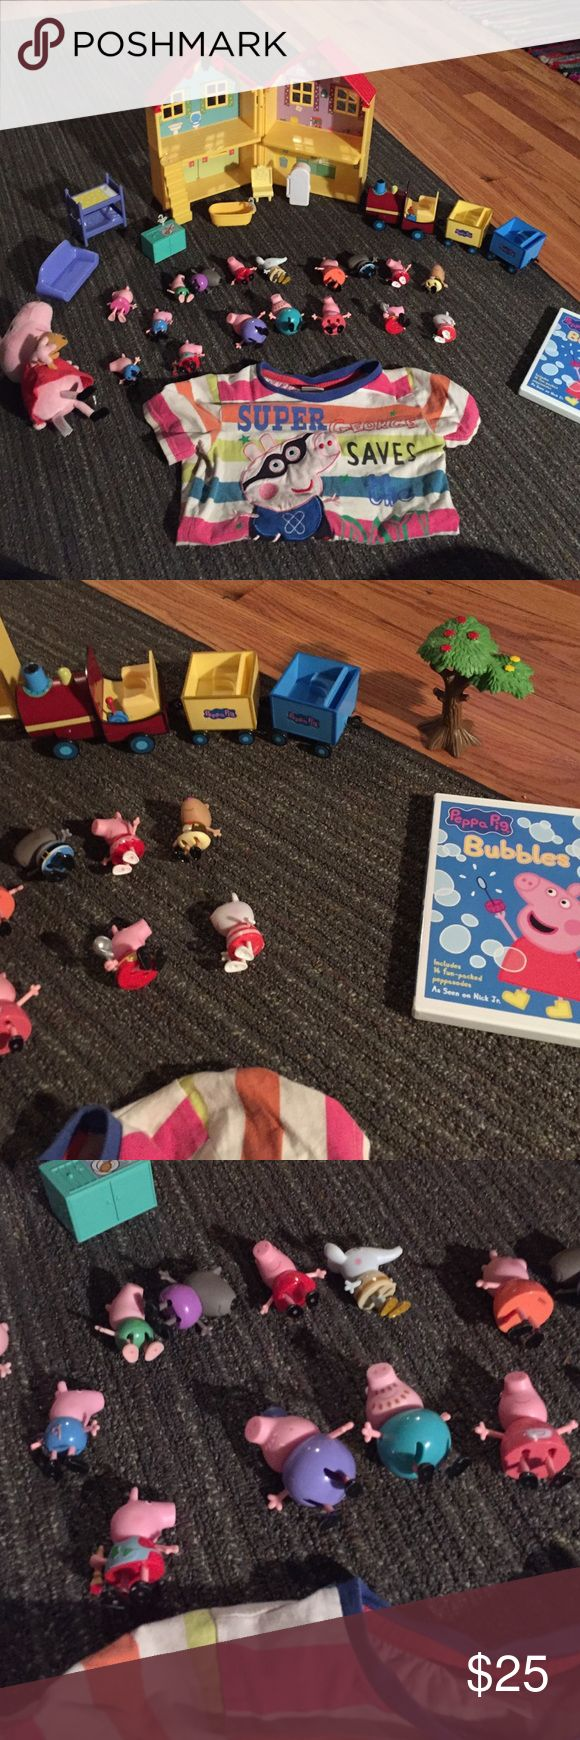 Peppa pig gift set ! Includes shirt size 4t-5t. Peppa pig stuff animal. 17 authentic figures. Peppa pig house and house  accessories, peppa pig train and tree. Also throwing in a used peppa pig movie it has scratches on the back but does not skip at all. Everything else is brand new Accessories